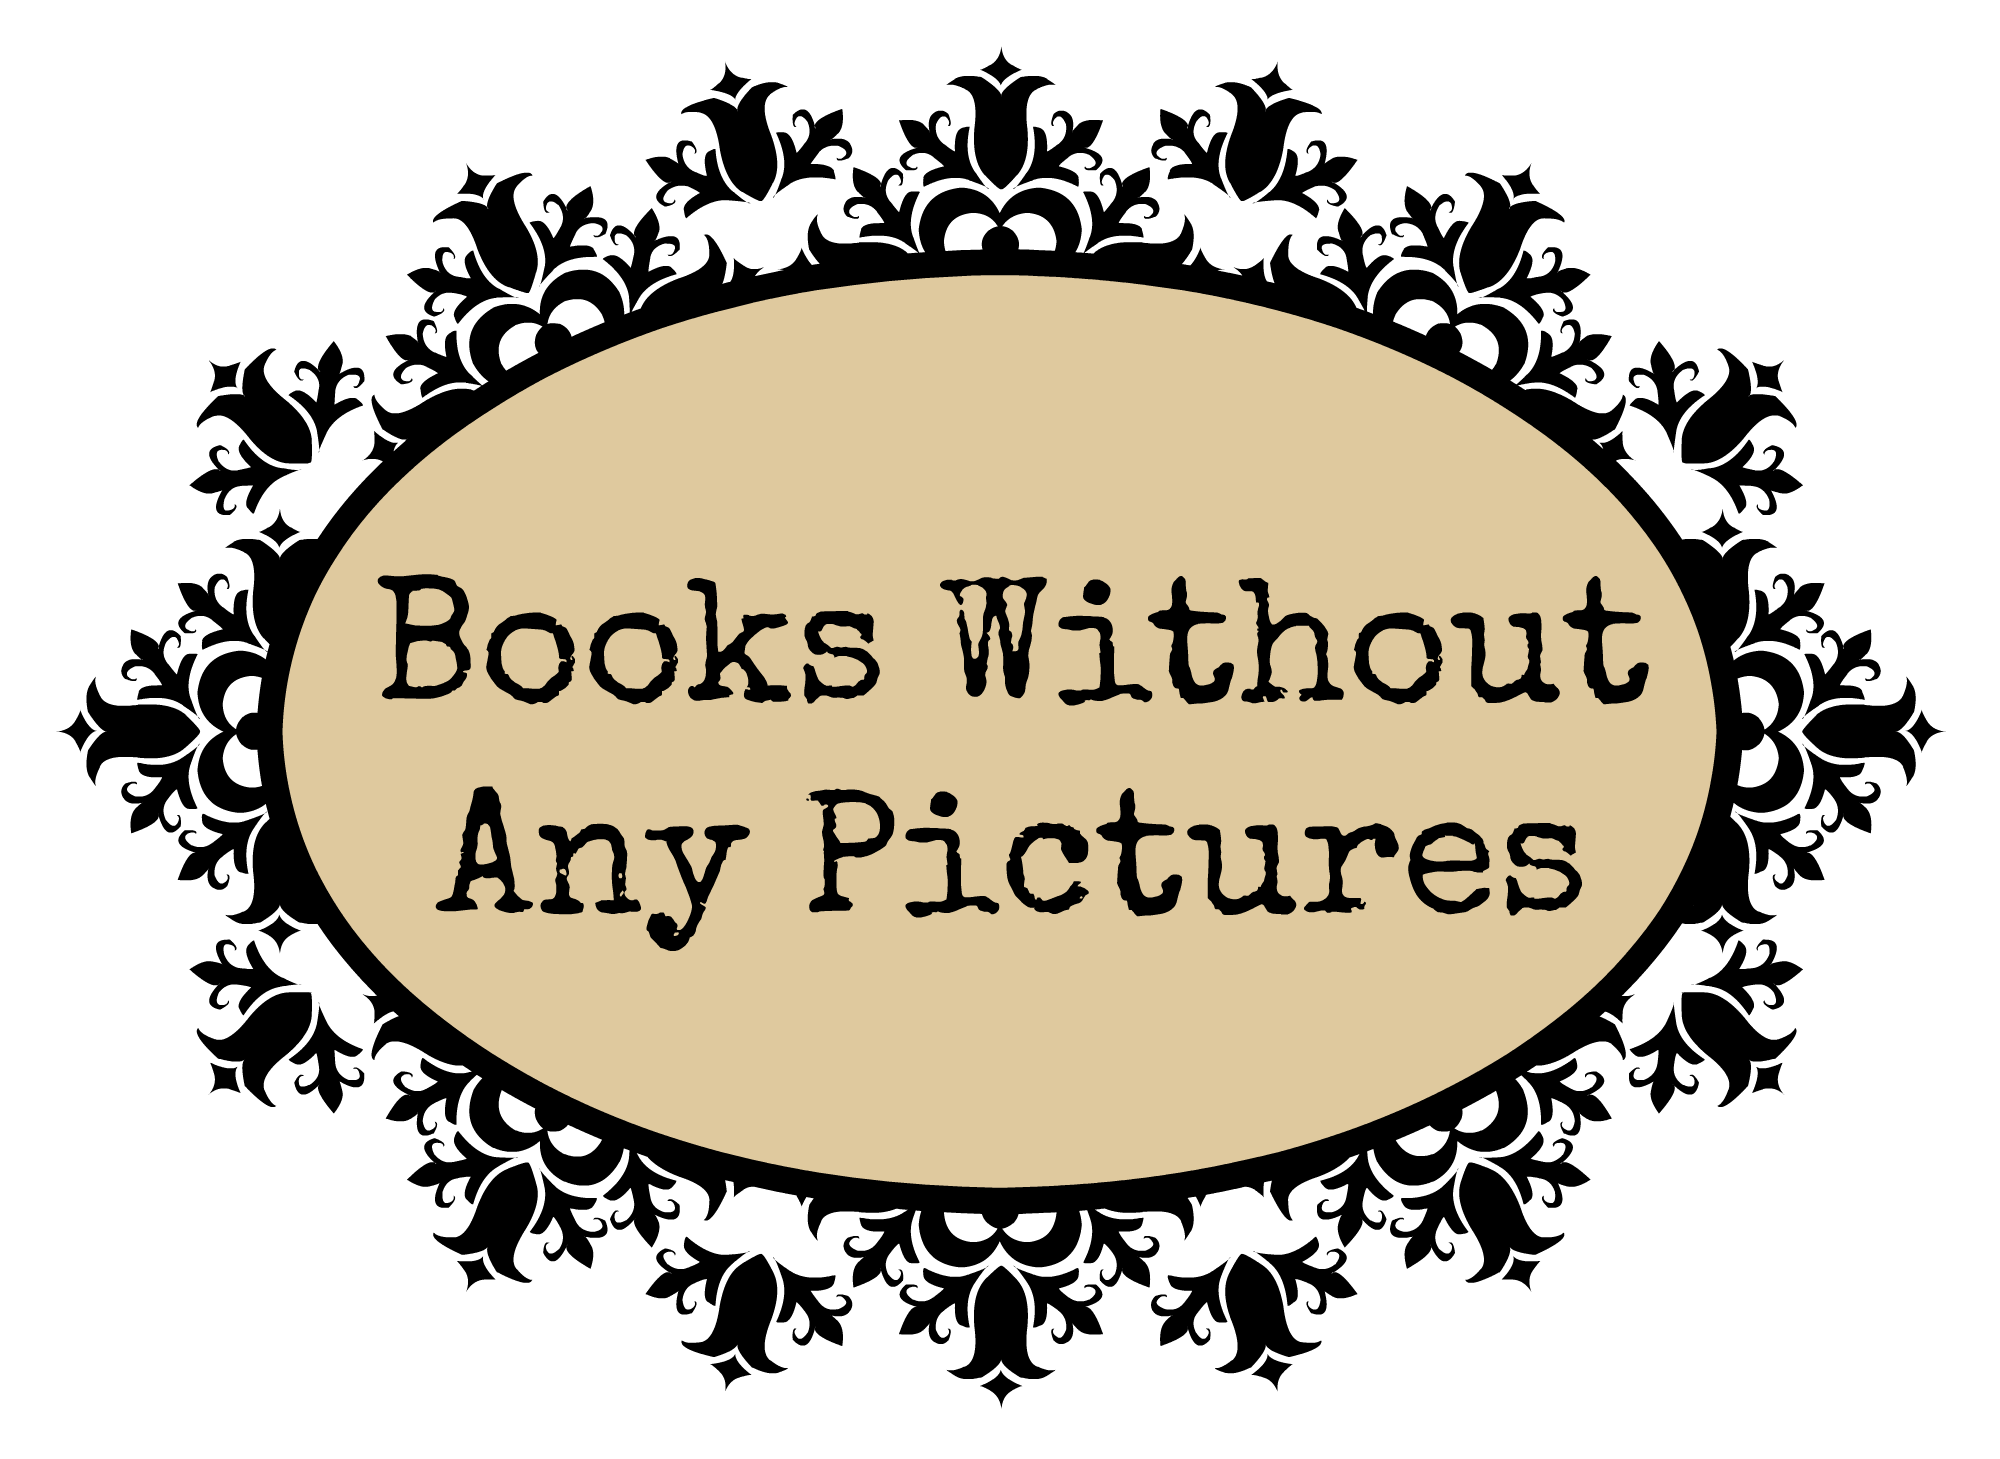 Books Without Any Pictures